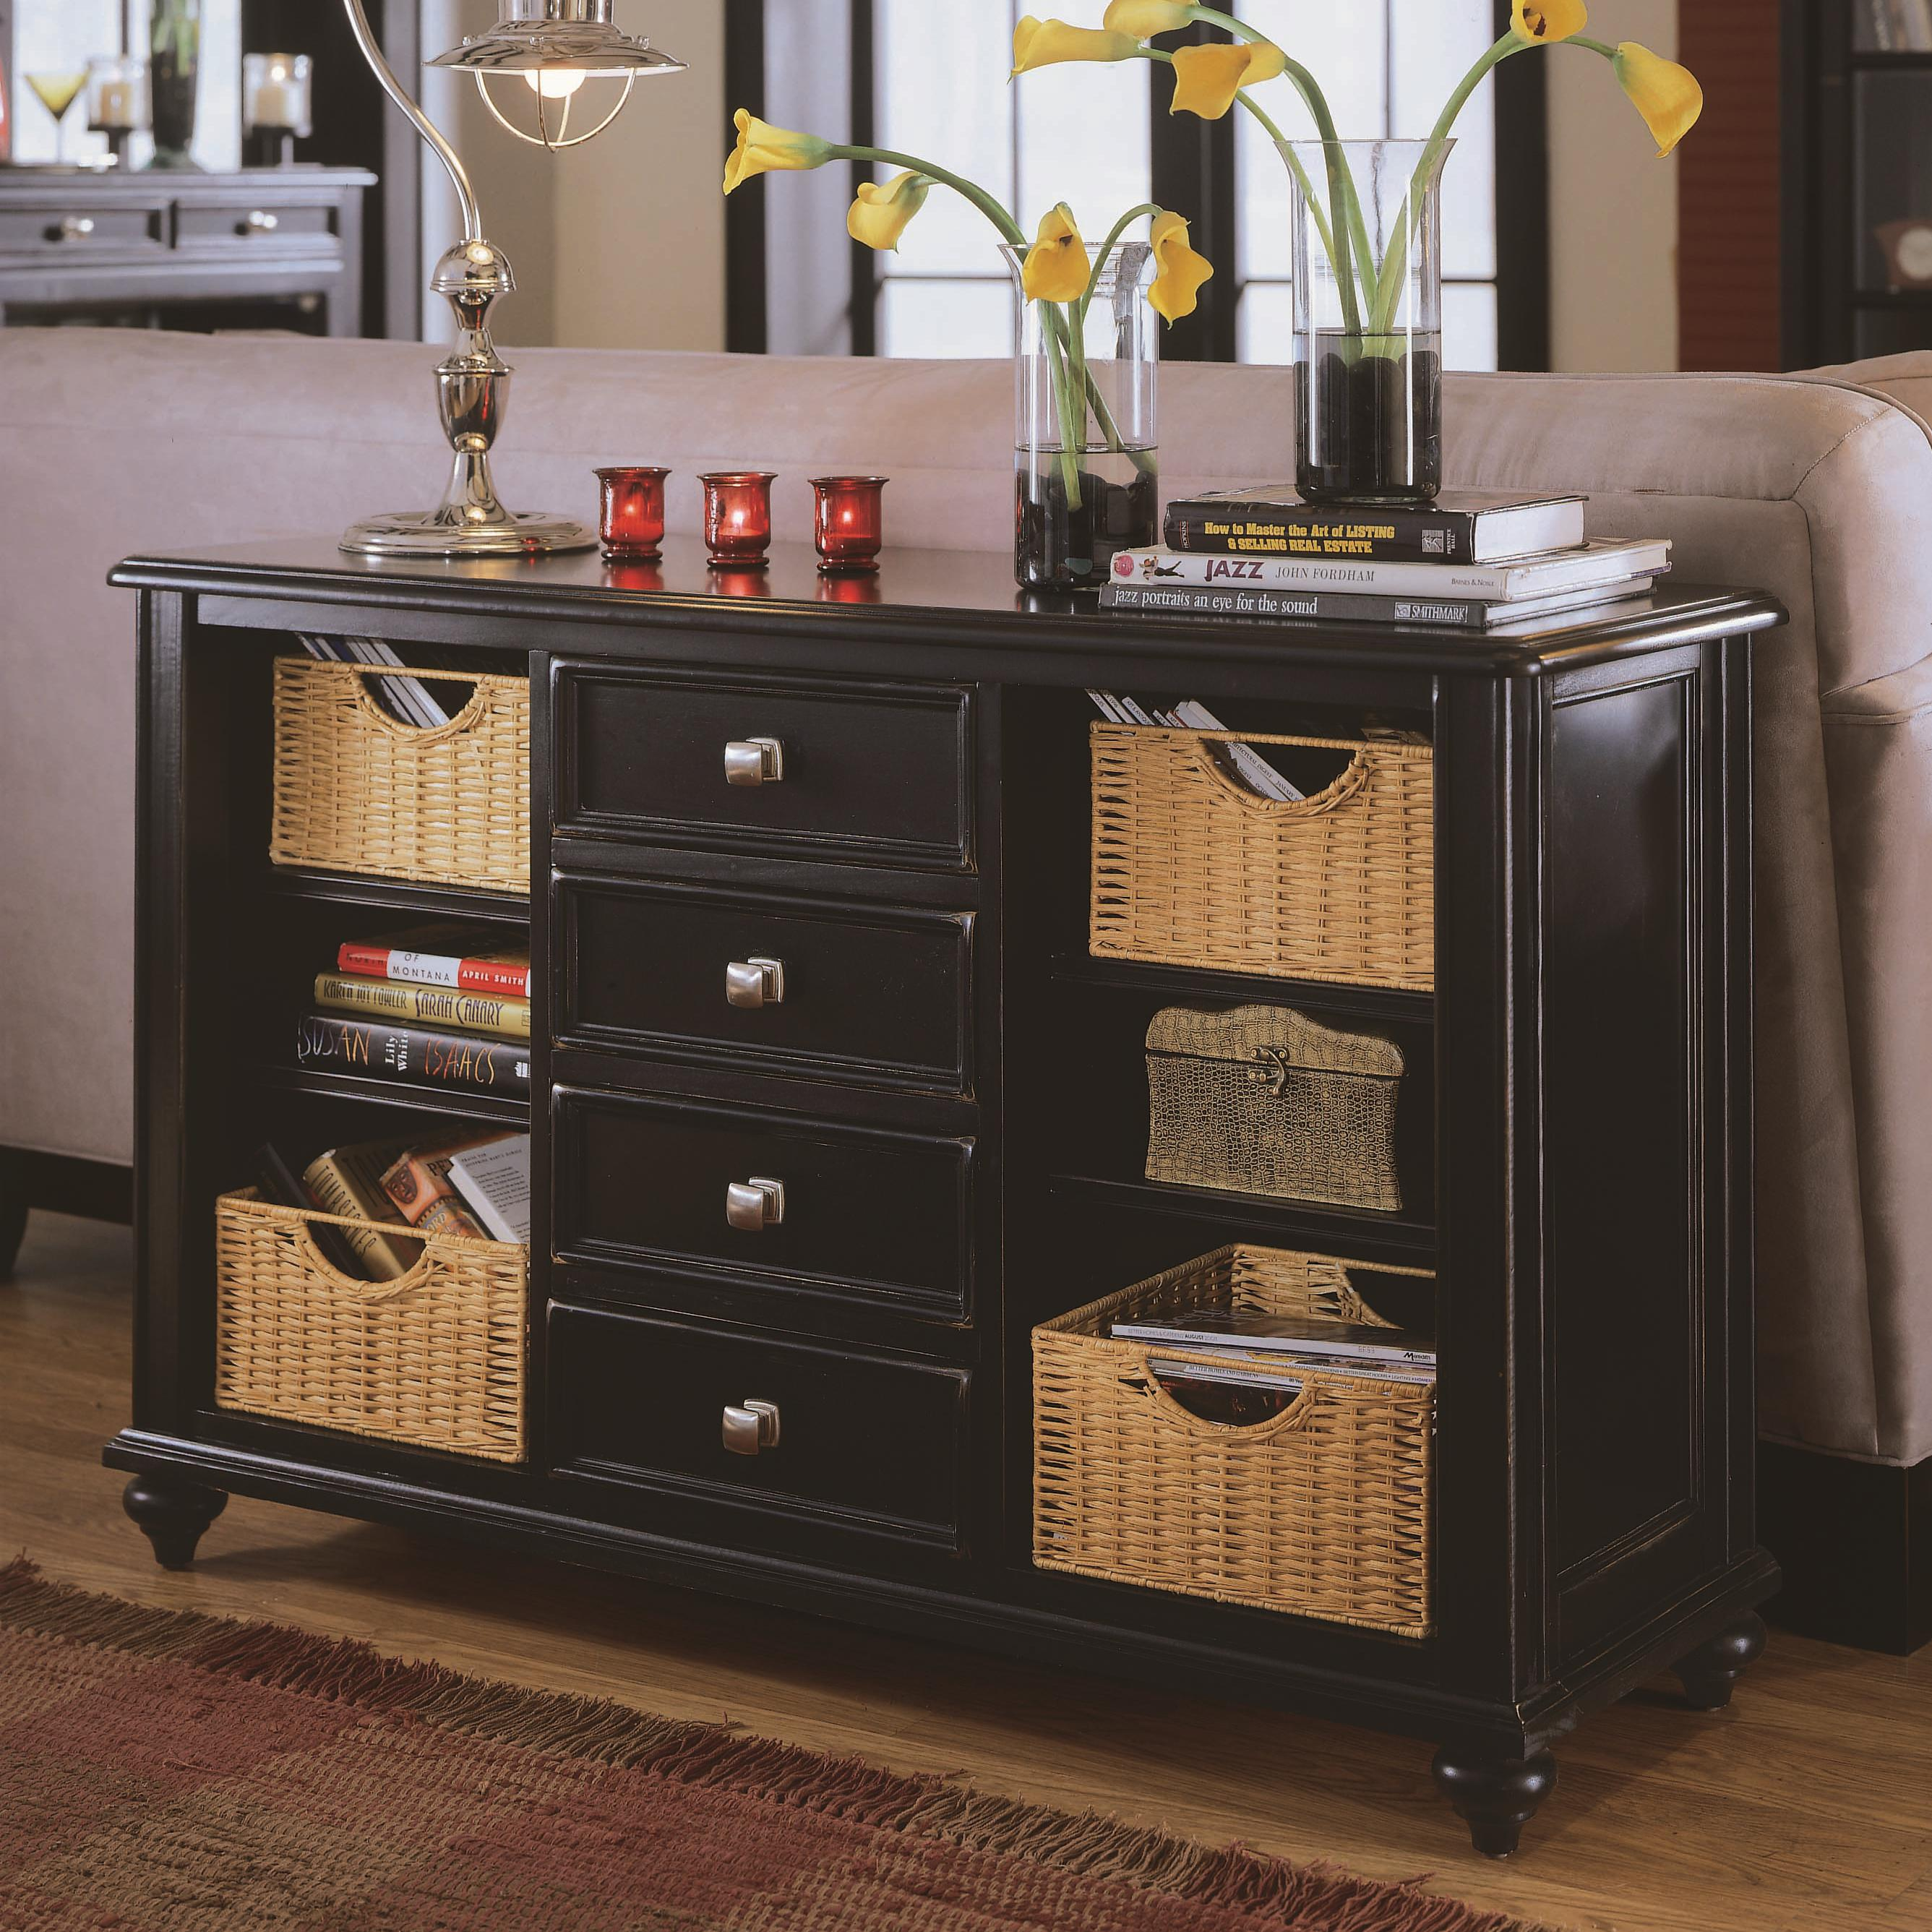 American Drew Camden   Dark Console Table With 4 Drawers And 4 Baskets    AHFA   Sofa Table Dealer Locator